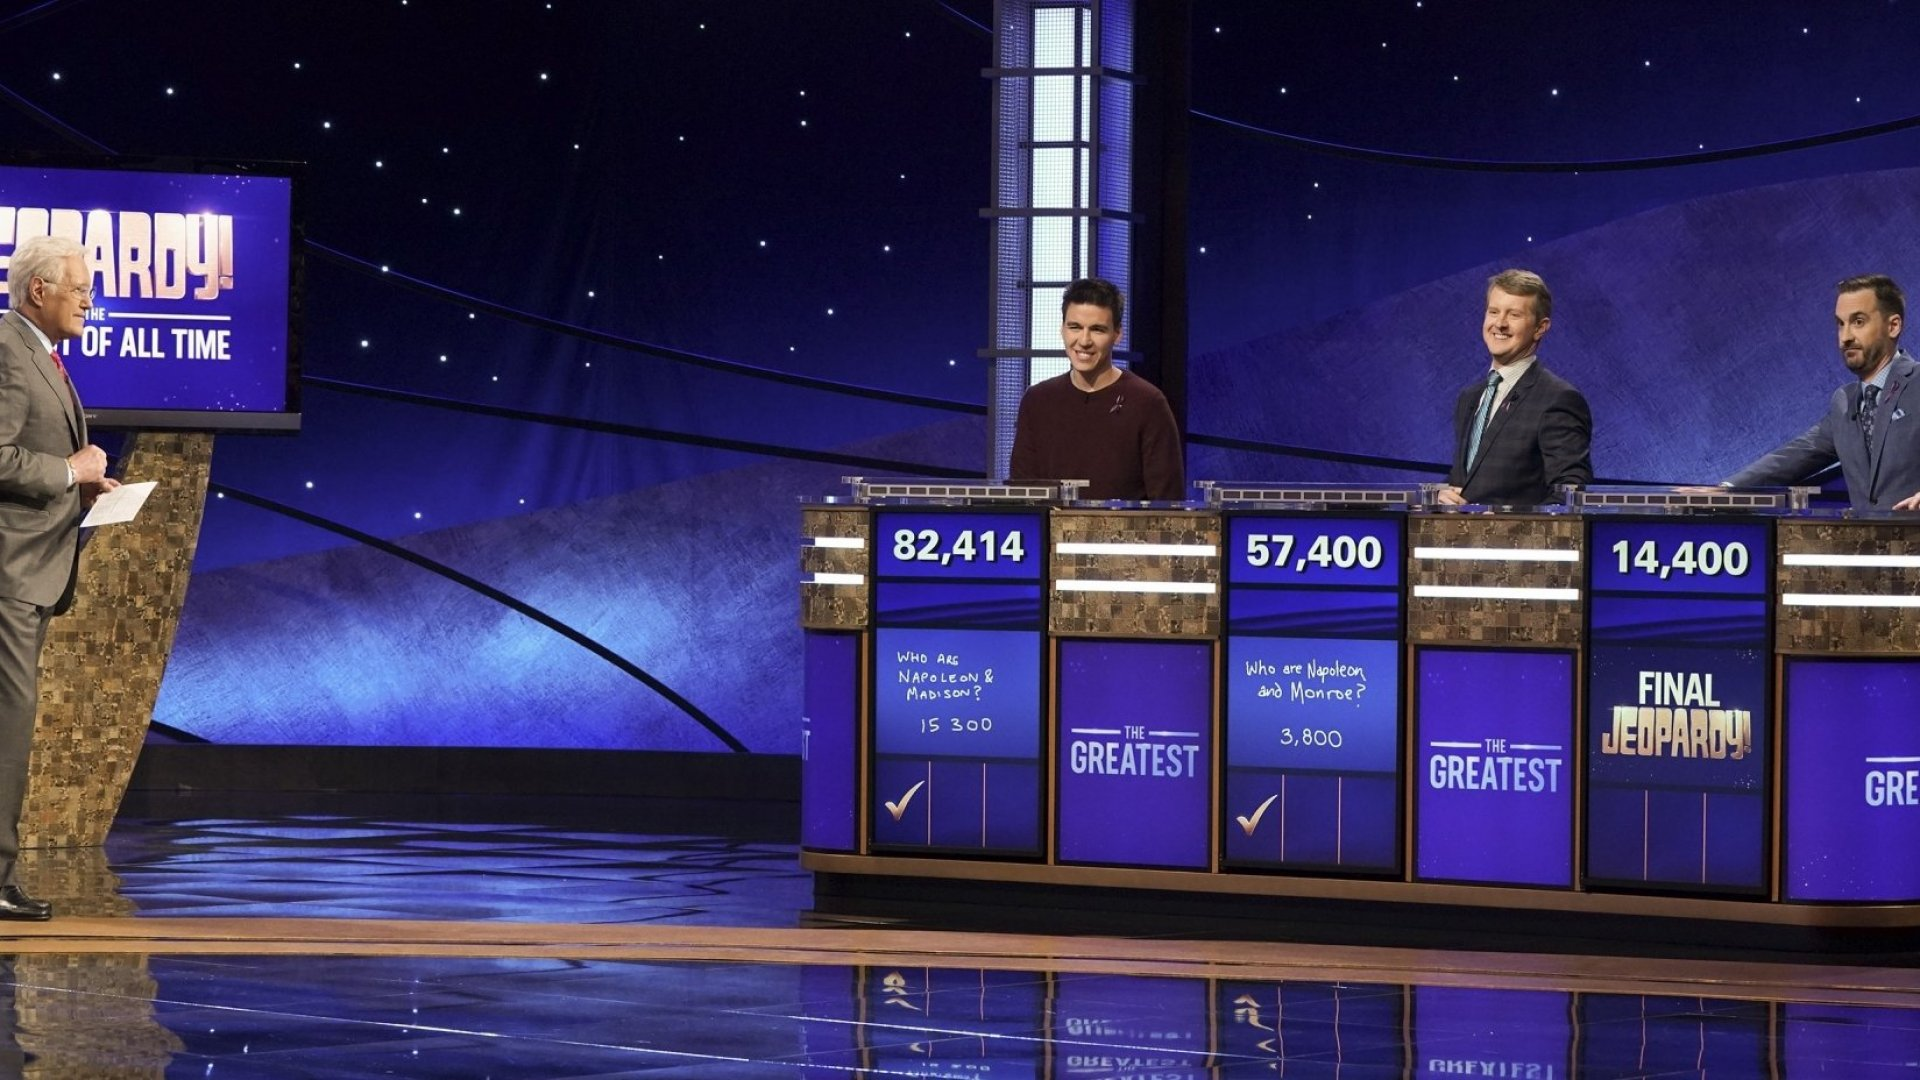 From left: 'Jeopardy!' host Alex Trebek and contestants James Holzhauer, Ken Jennings, and Brad Rutter.